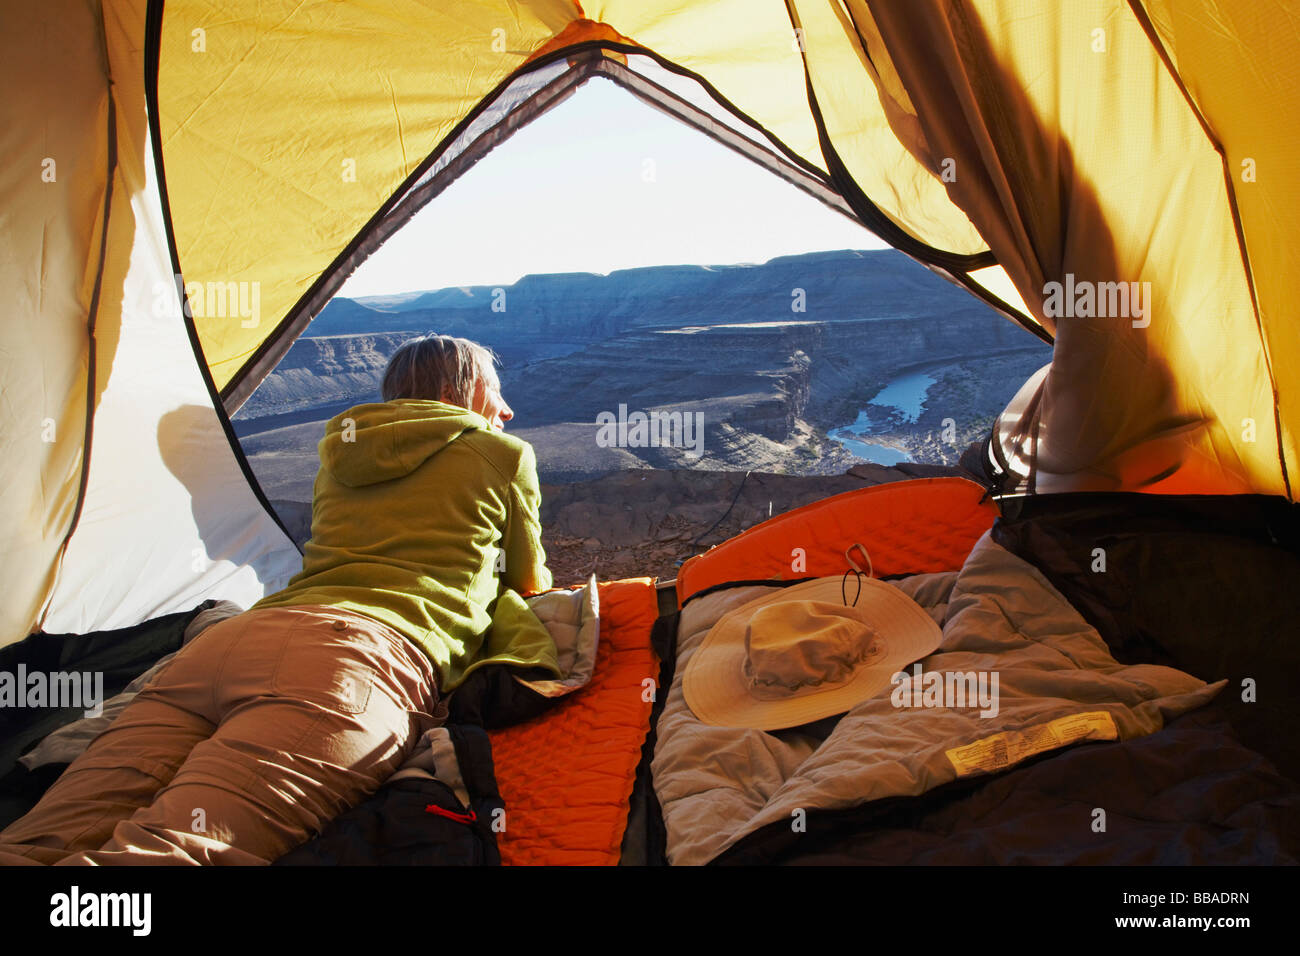 Una donna giaceva in una tenda, Ferro di Cavallo Bend, il Fish River Canyon, Namibia Foto Stock